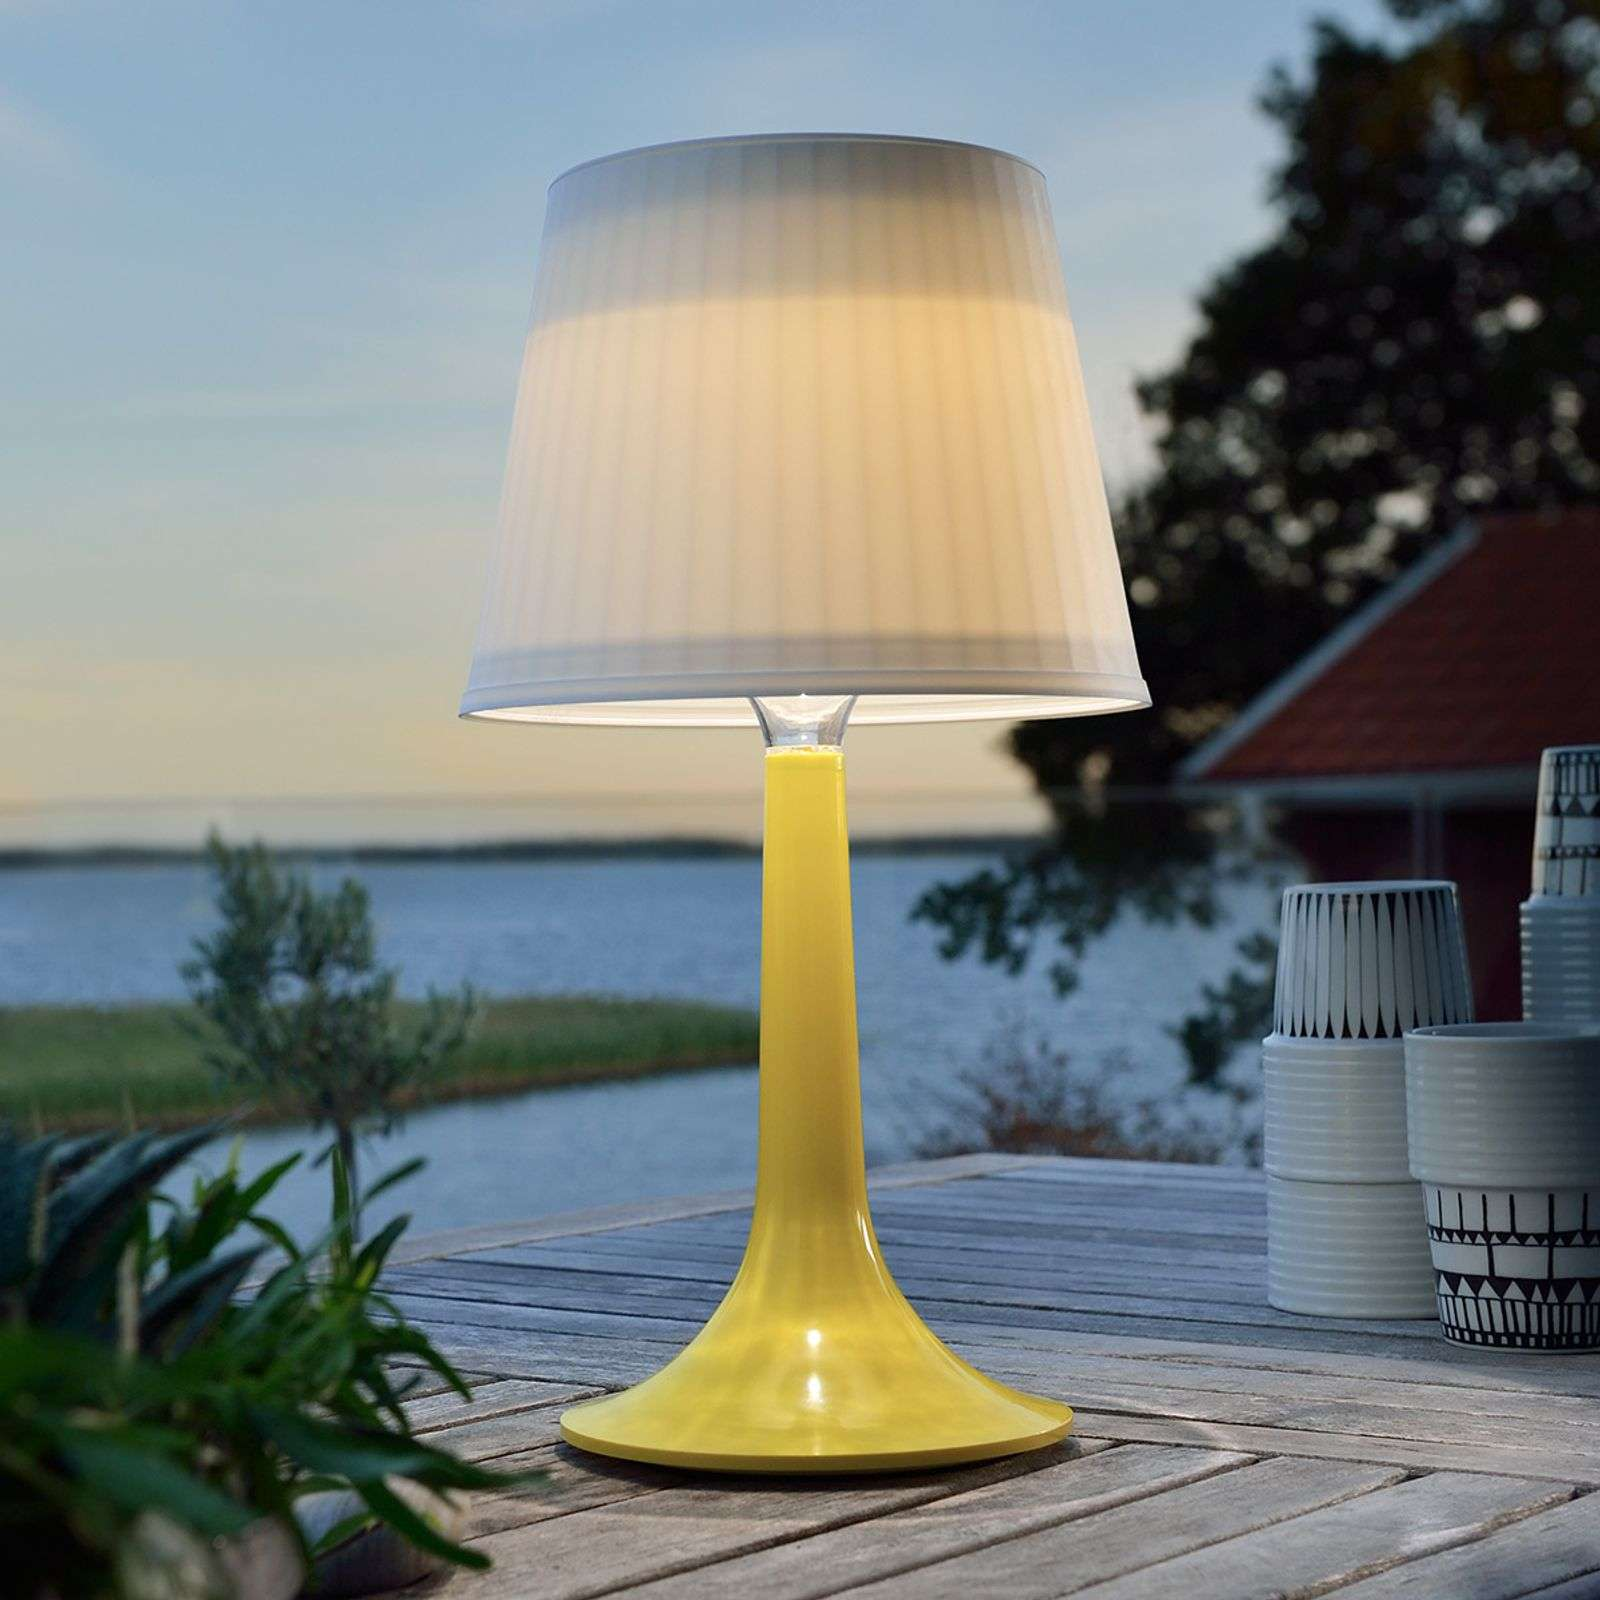 Lampe à poser LED solaire jaune Assisi Sitra